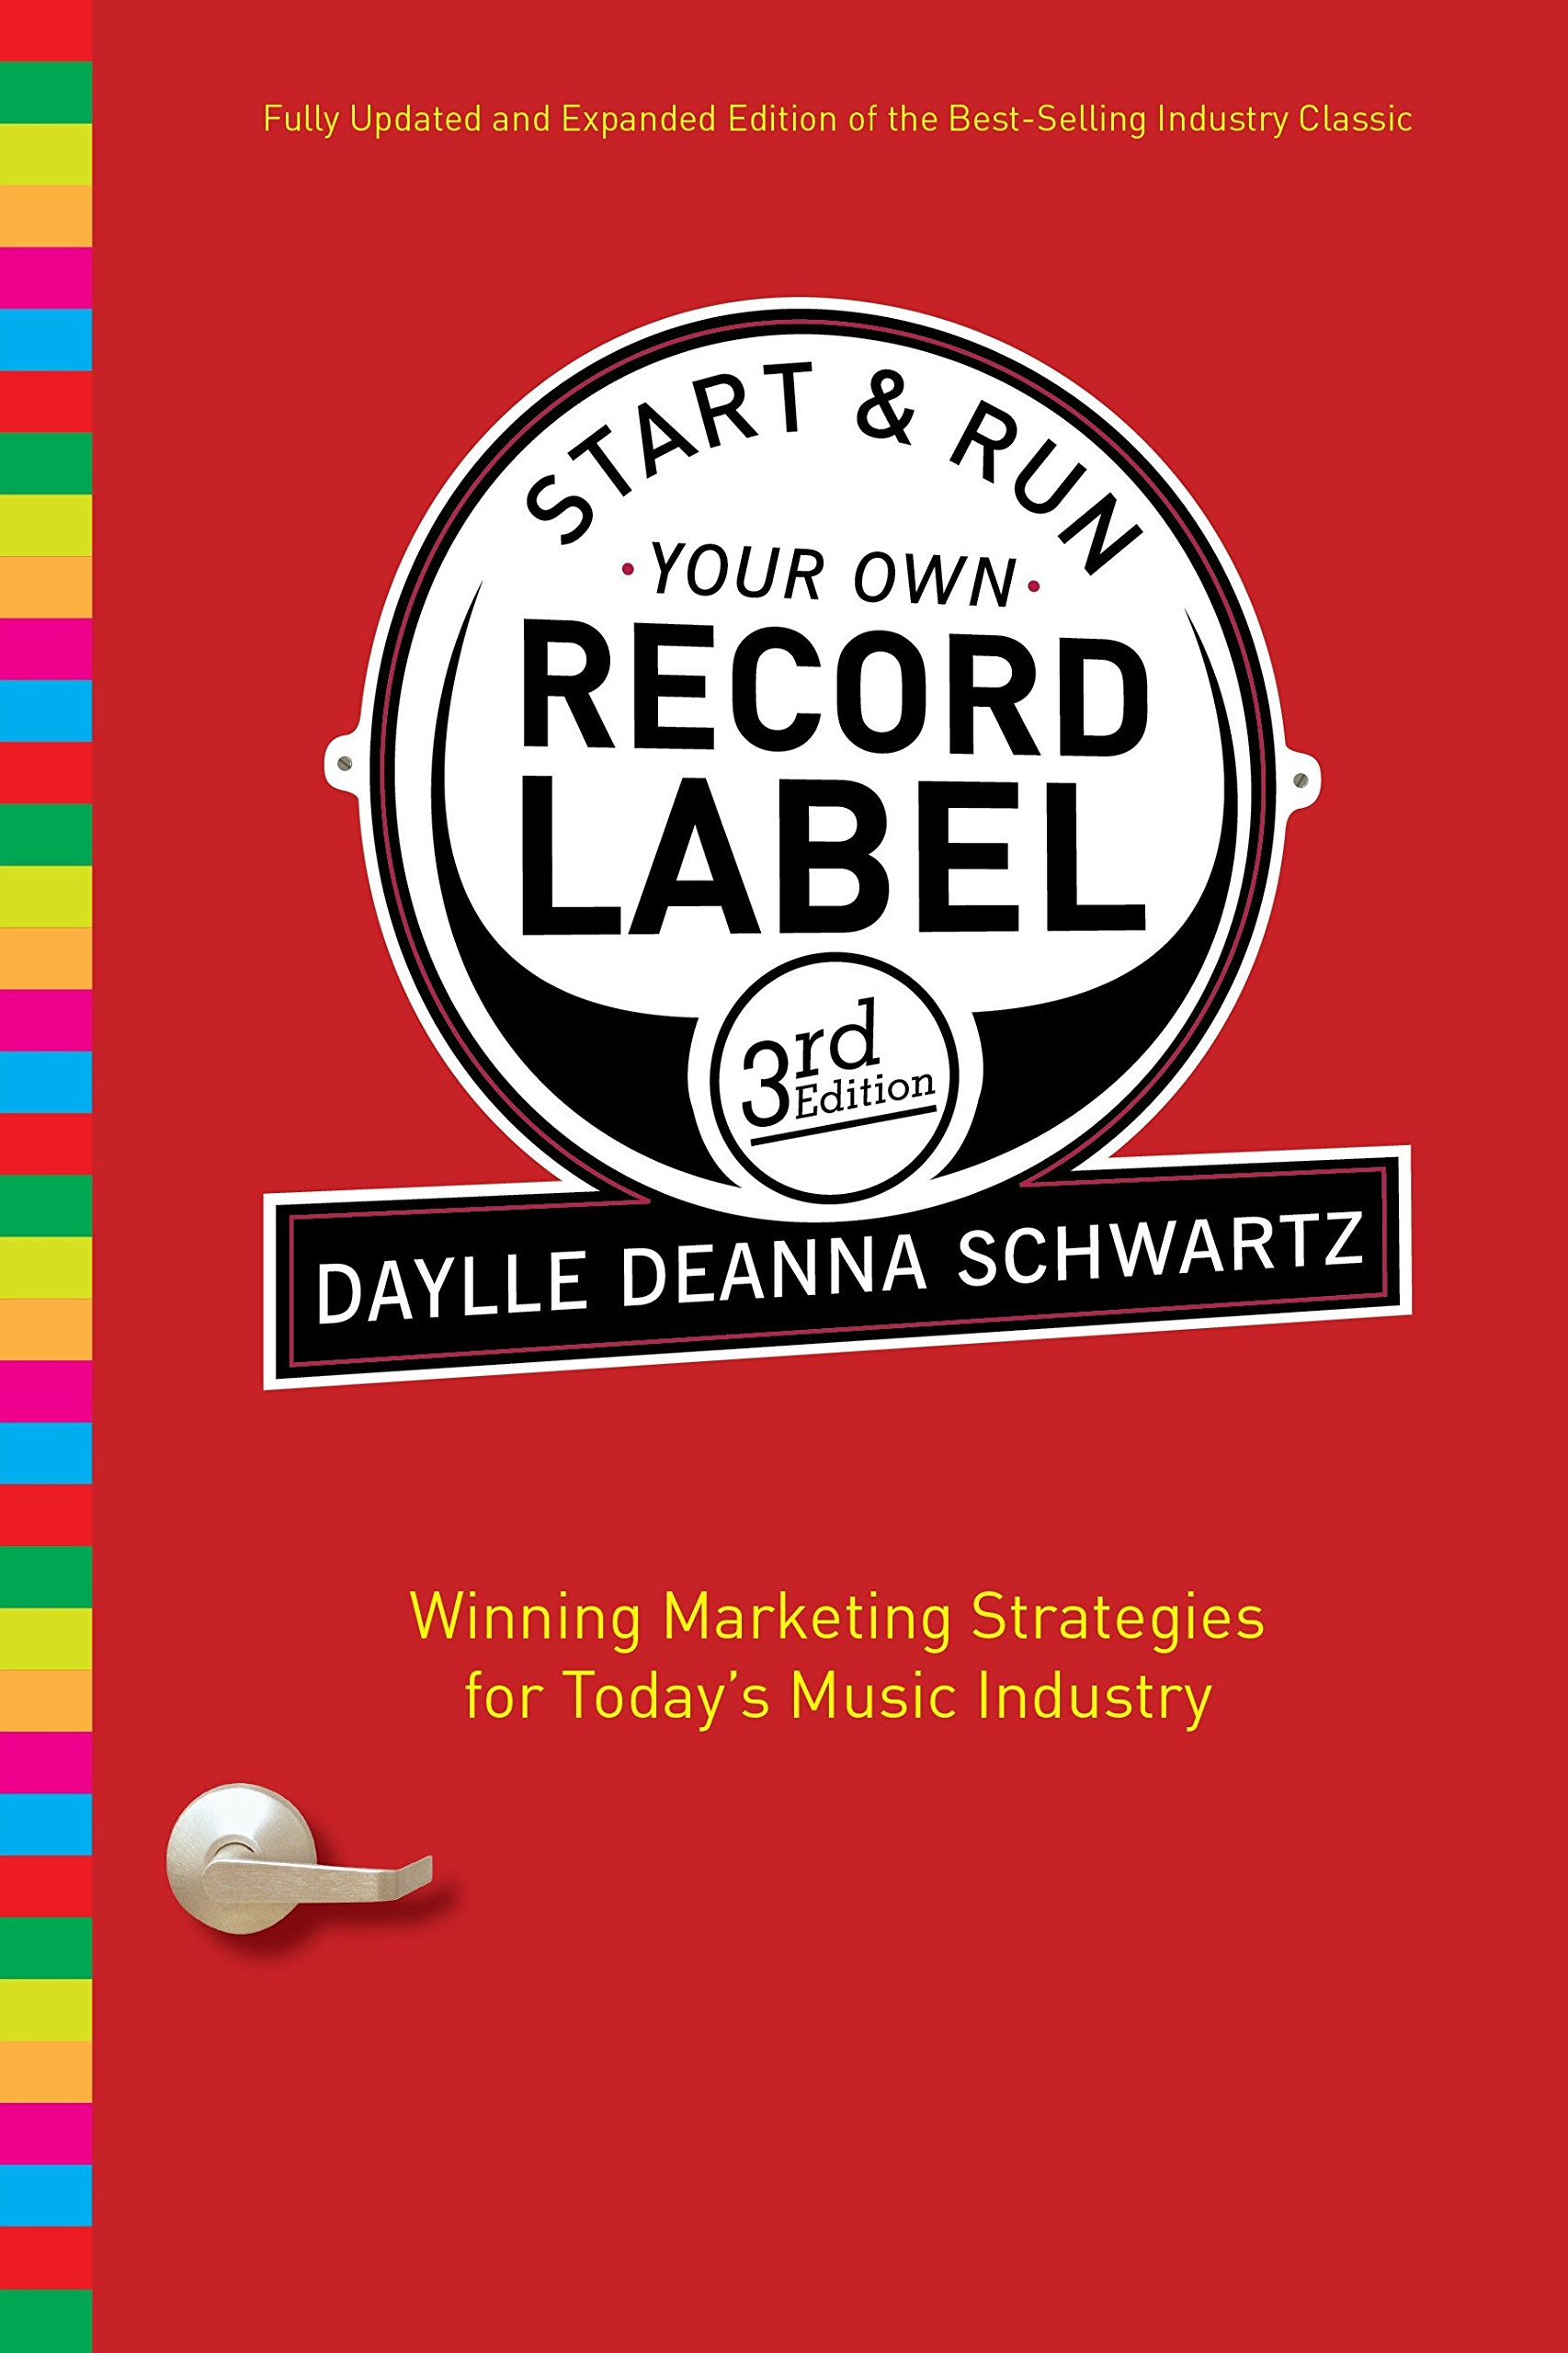 Download Start and Run Your Own Record Label, Third Edition: Winning Marketing Strategies for Today's Music Industry (Start & Run Your Own Record Label) PDF